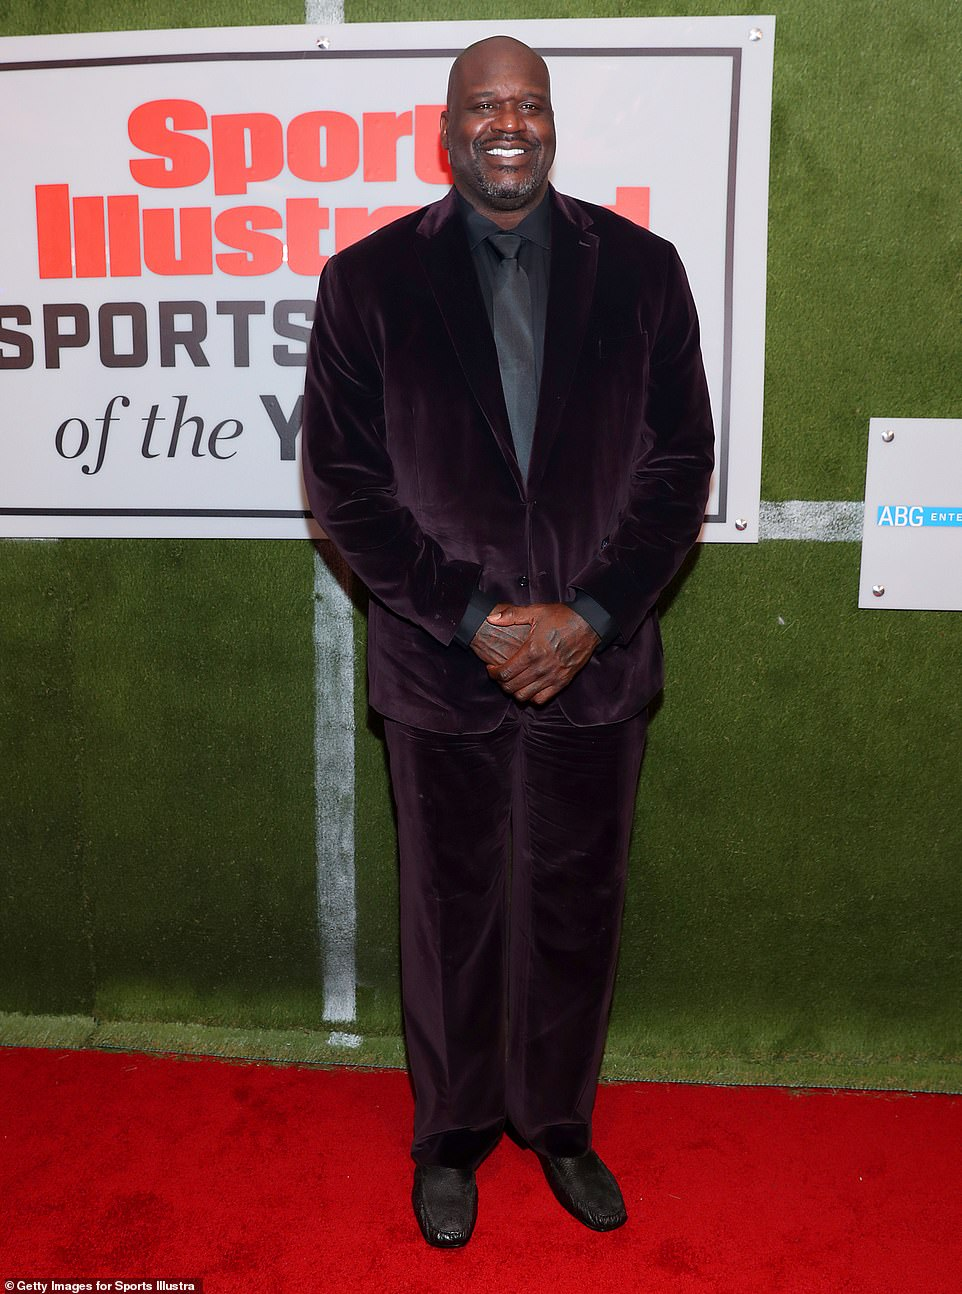 Top of the world: O'Neal is best known for his stint with the Los Angeles Lakers from 1996 to 2004, when he and Kobe Bryant were teammates; seen in 2019 in NYC